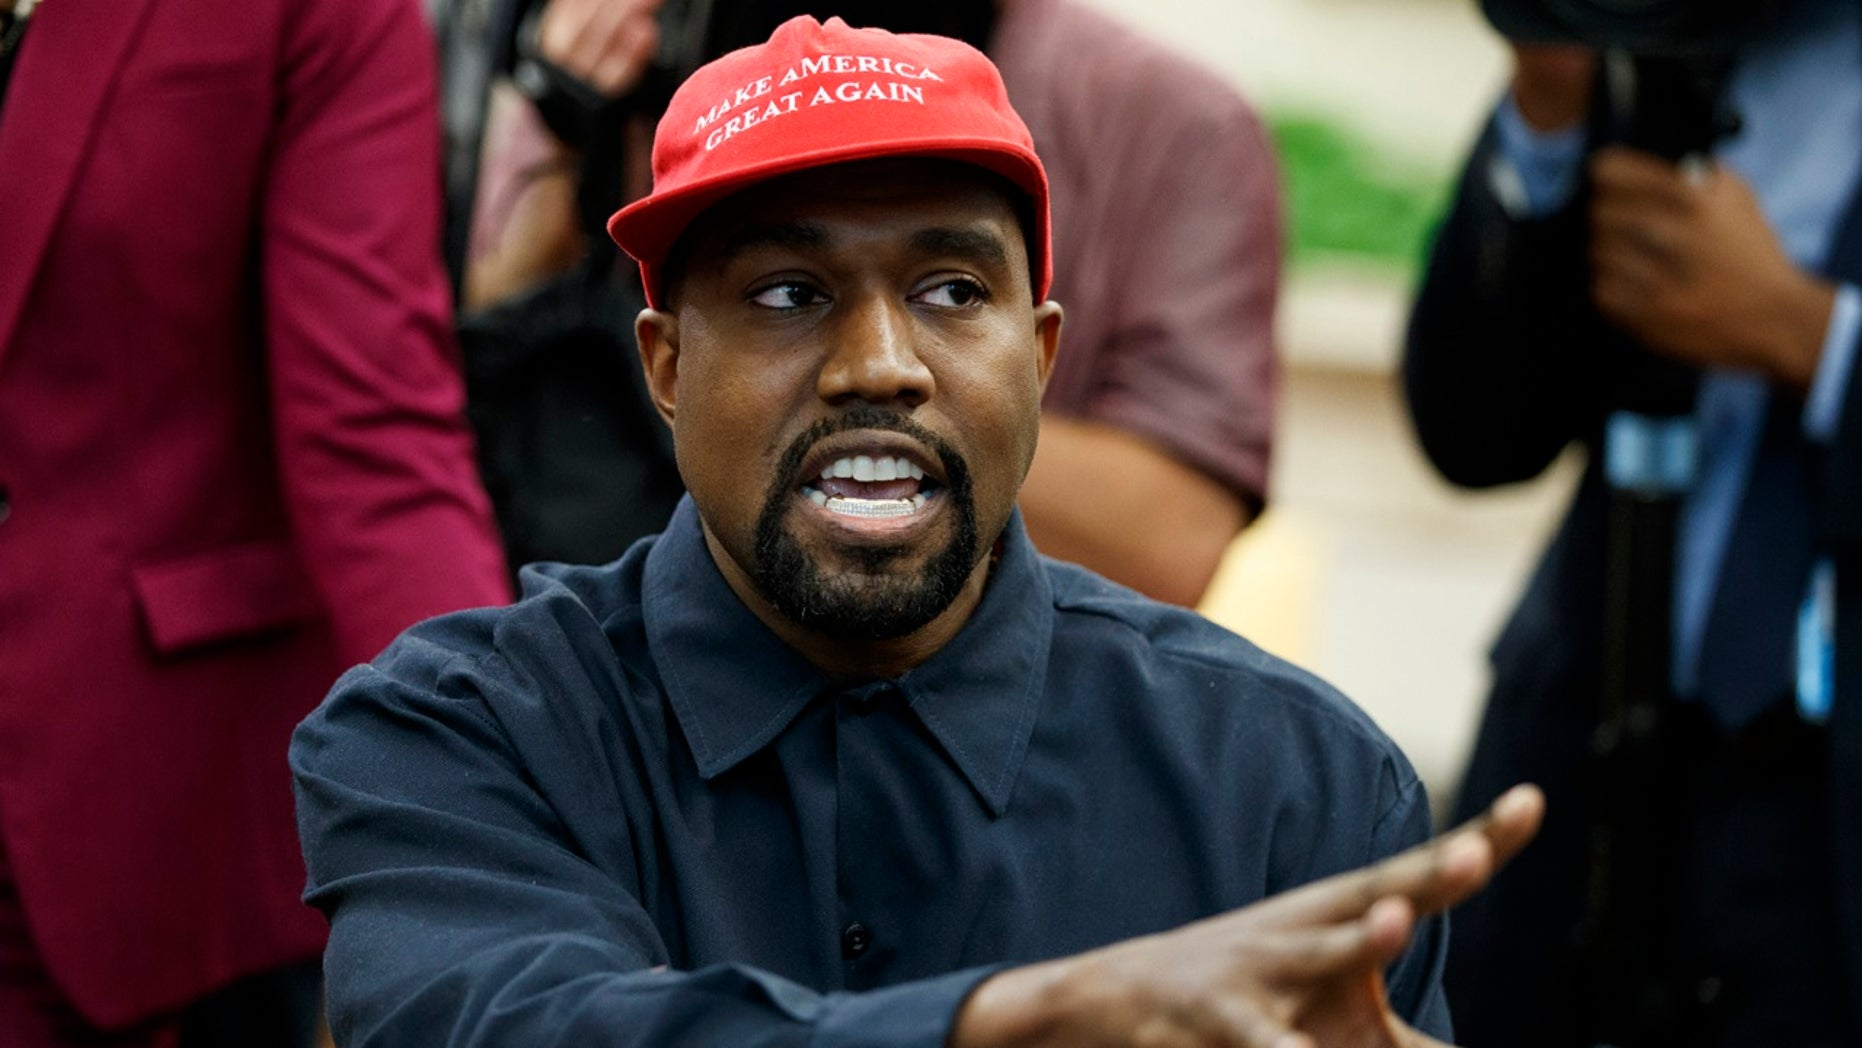 FILE - In this Oct. 11, 2018, file photo, Rapper Kanye West speaks during a meeting in the Oval Office of the White House with President Donald Trump, in Washington.